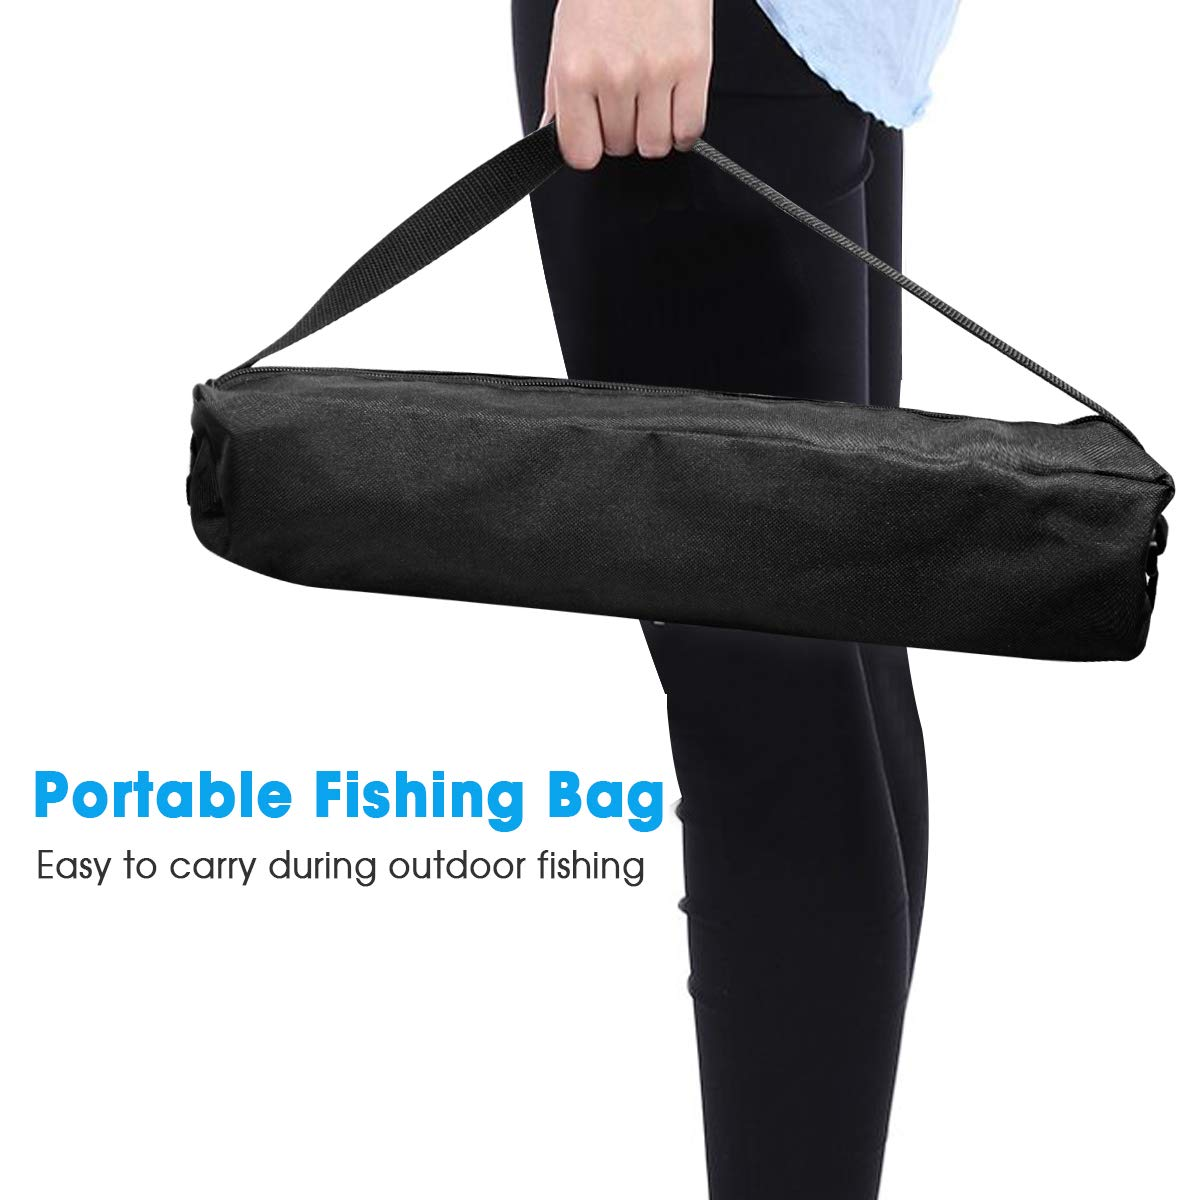 Telescopic Fishing Rod Set,FishOaky Spinning Fishing Gear Organizer Pole Sets with Full Kits Lure Case and Carry Bag  for Saltwater &Freshwater Kids&Adult by FishOaky (Image #4)